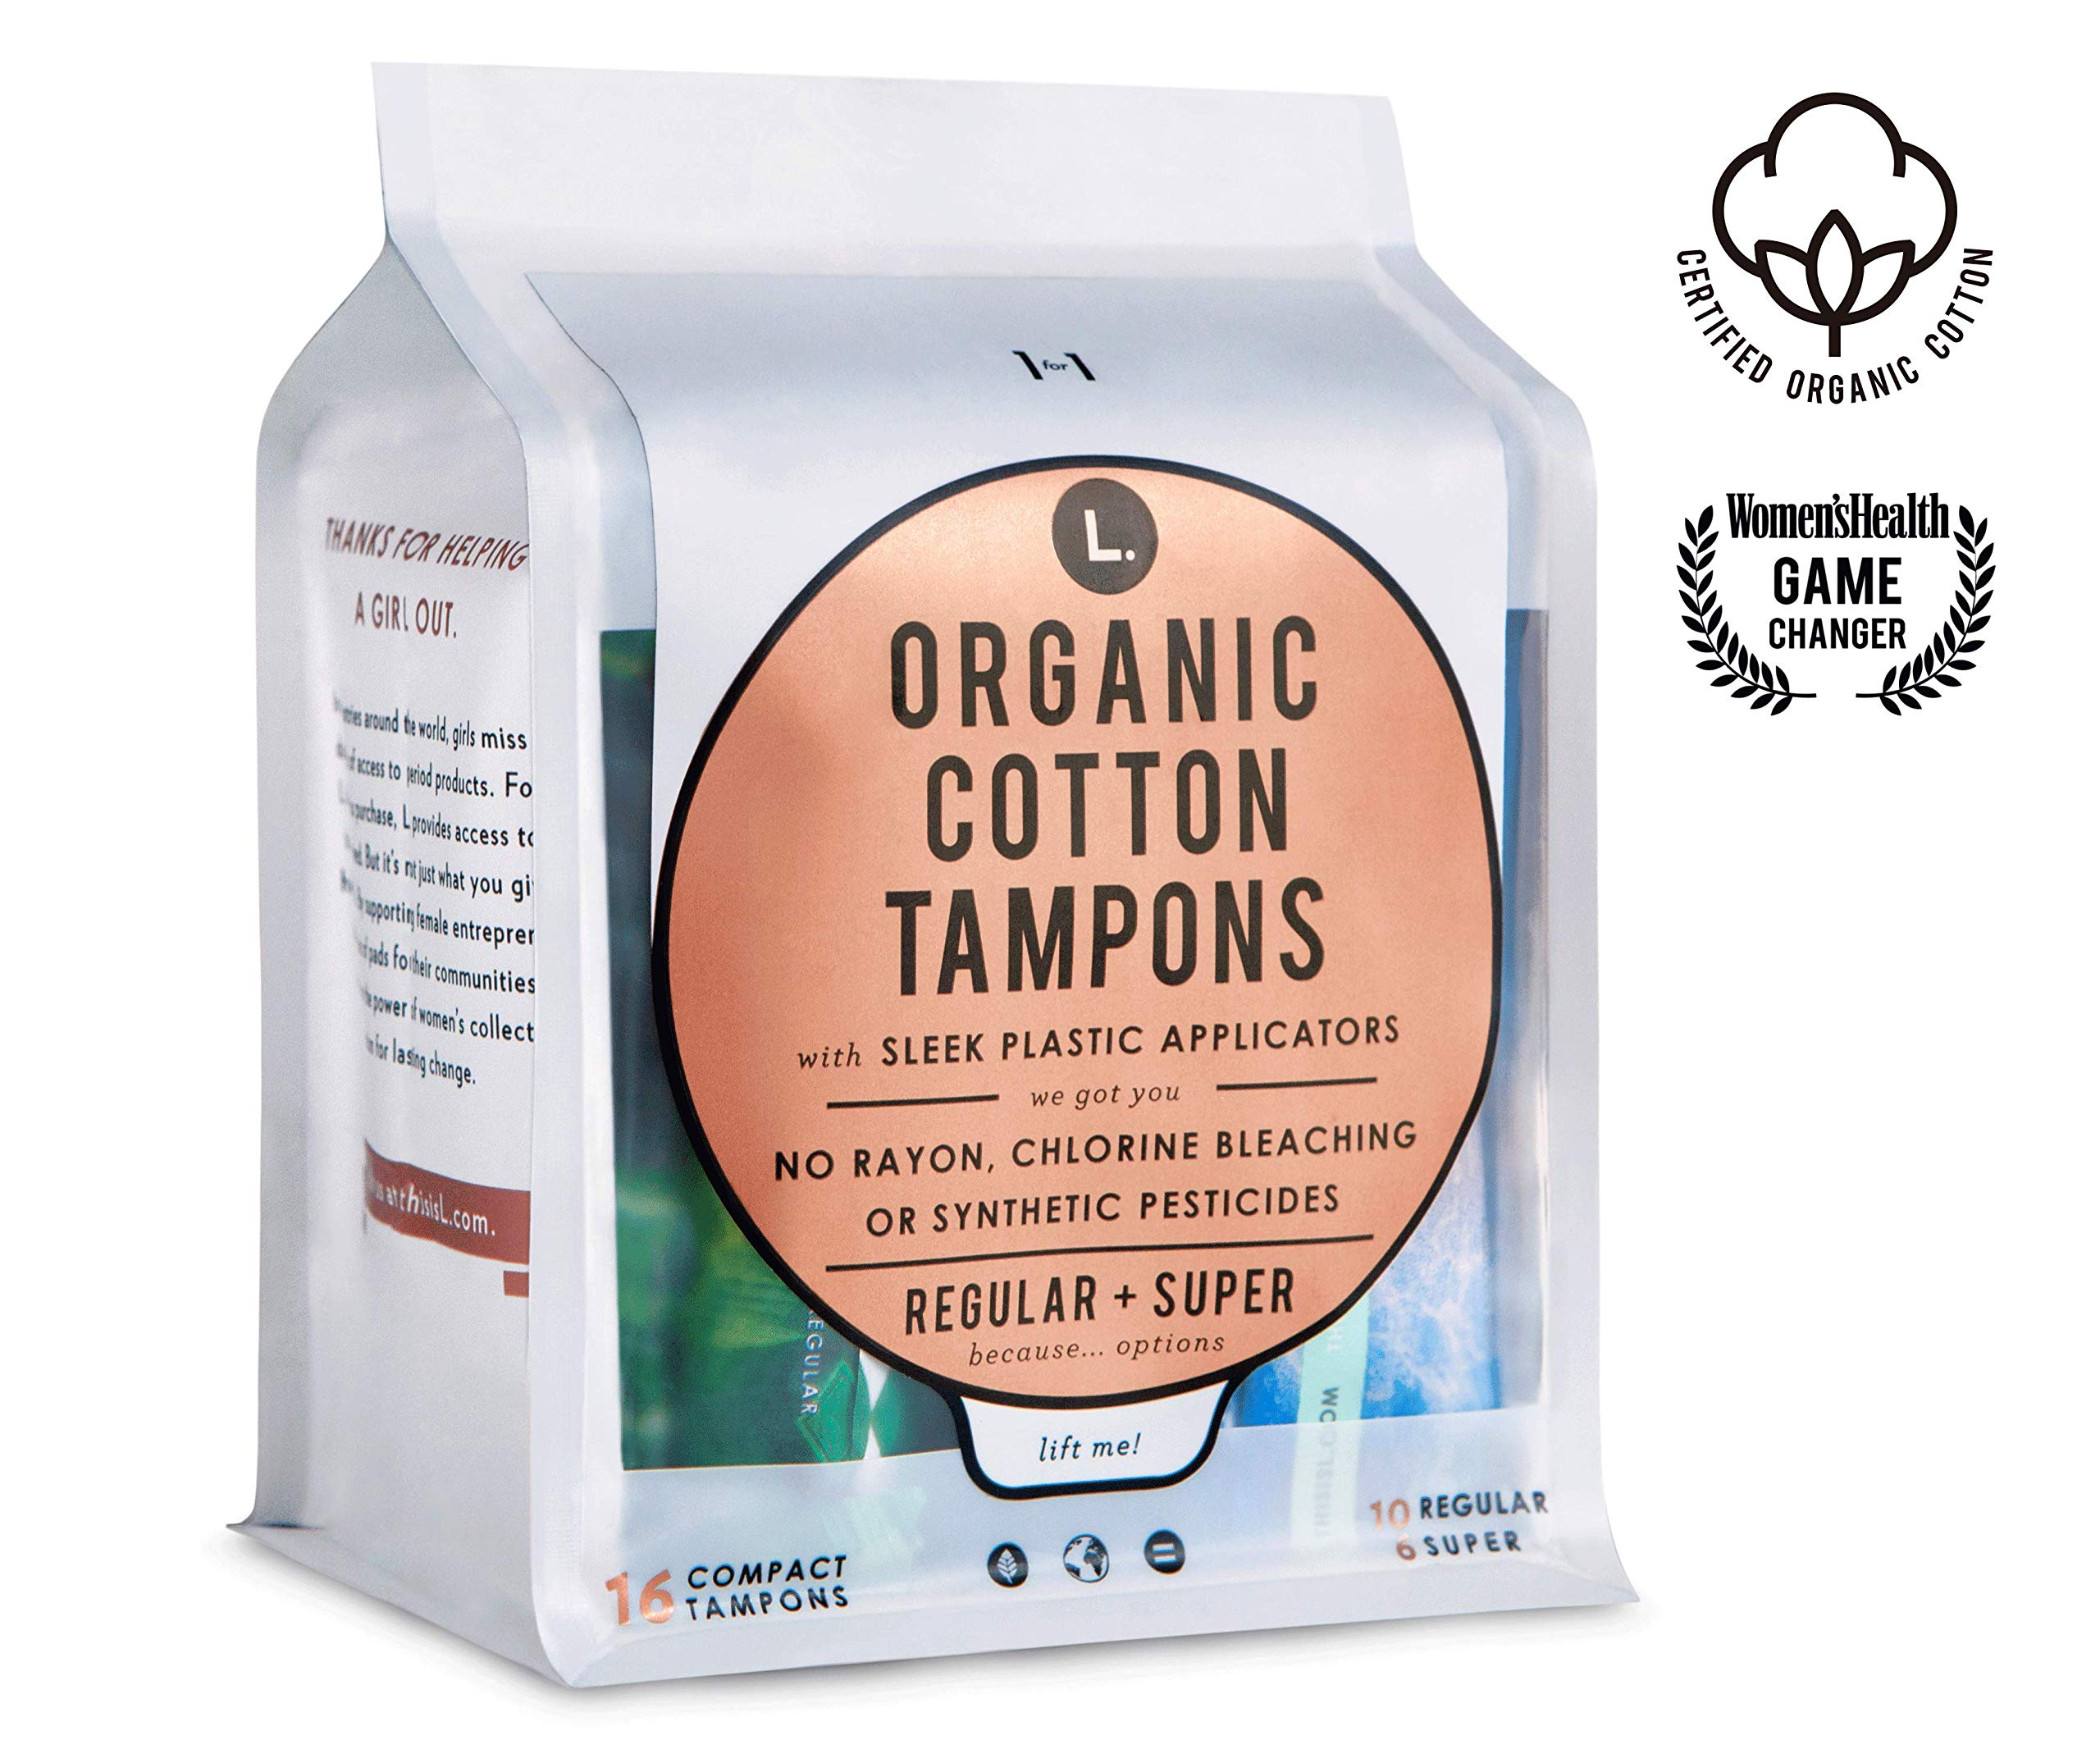 L. Organic Cotton Tampons with BPA-Free Applicators, Regular + Super Absorbency, 64 Count